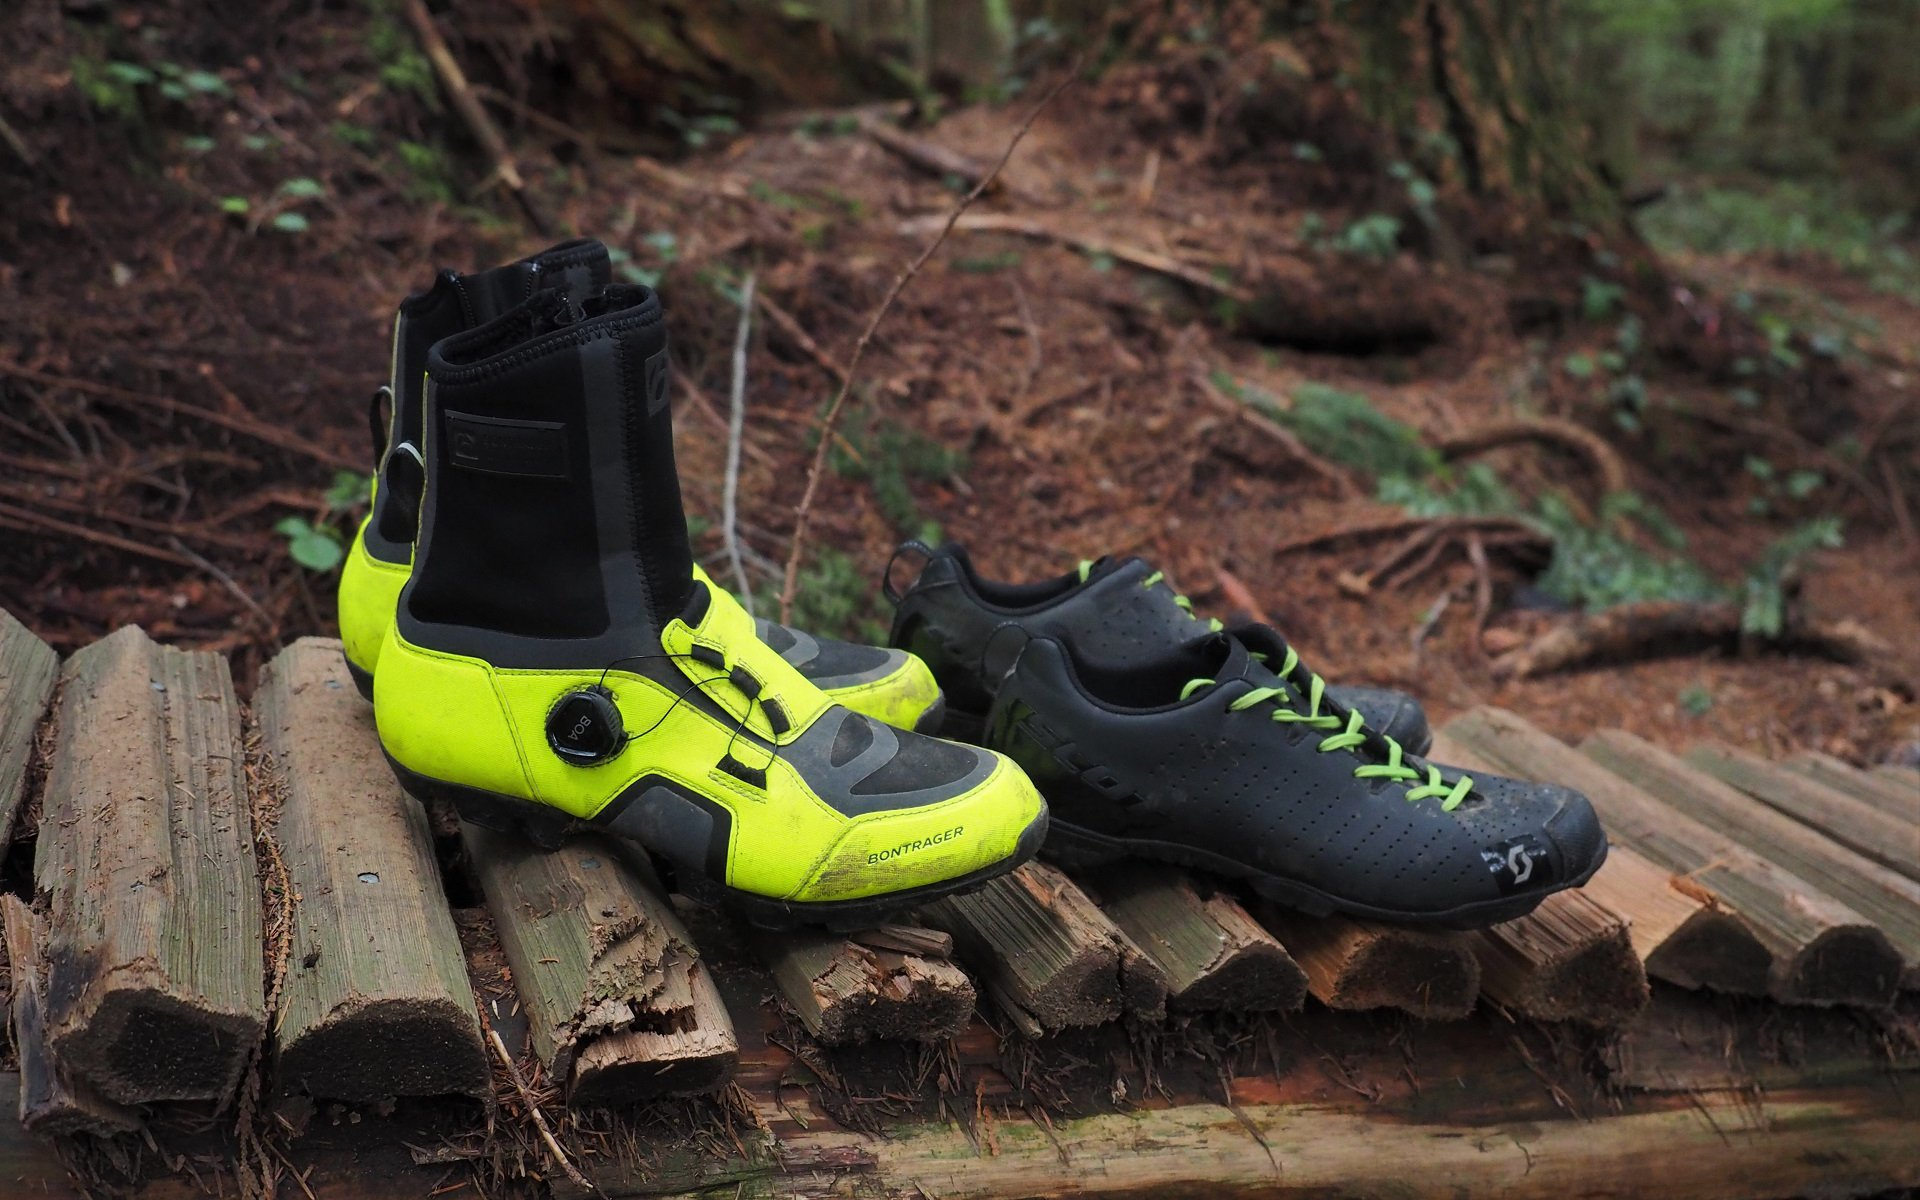 Scott and Bontrager Shoes AndrewM